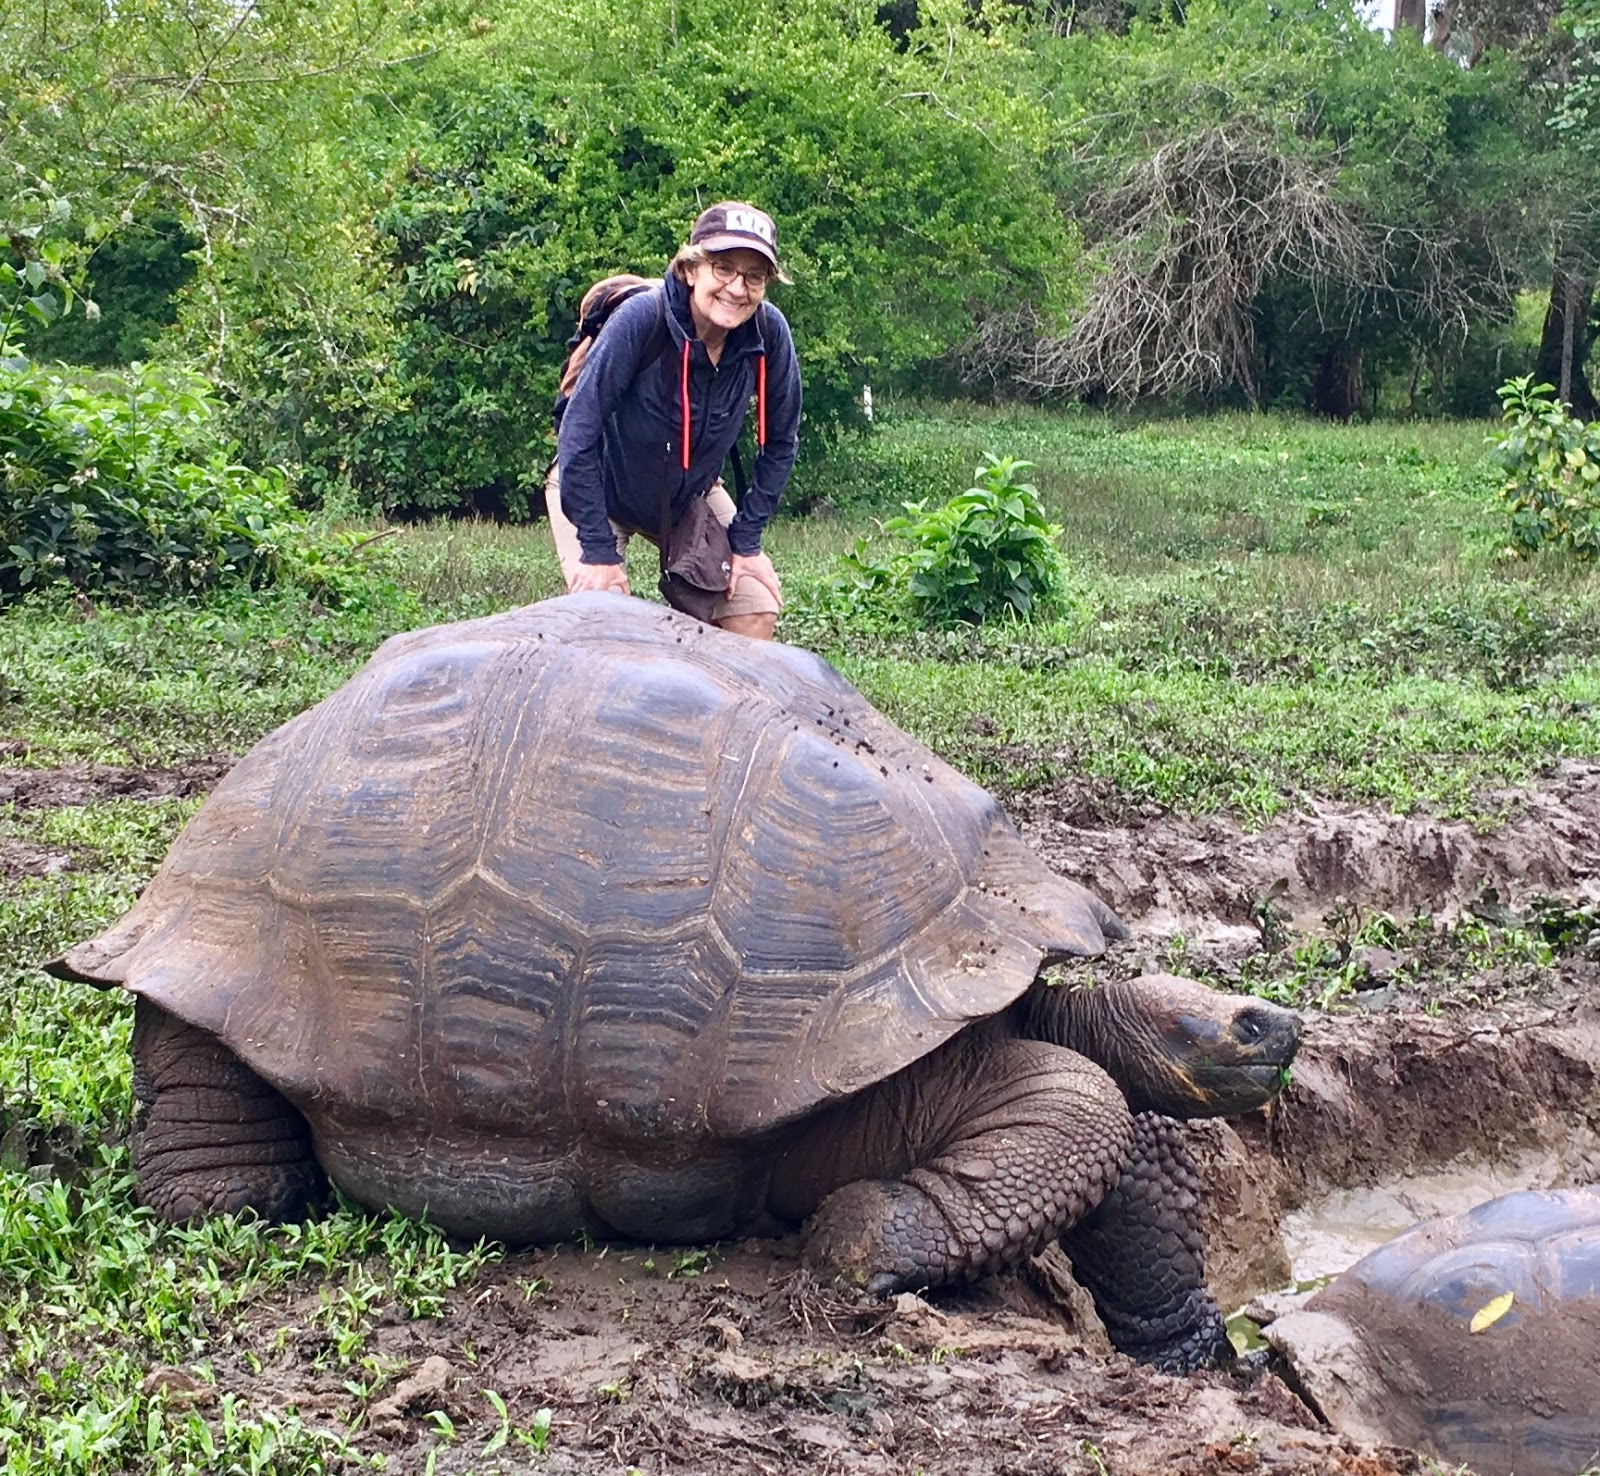 Galapagos tortoise back from the brink | Earth | EarthSky |Galapagos Tortoise